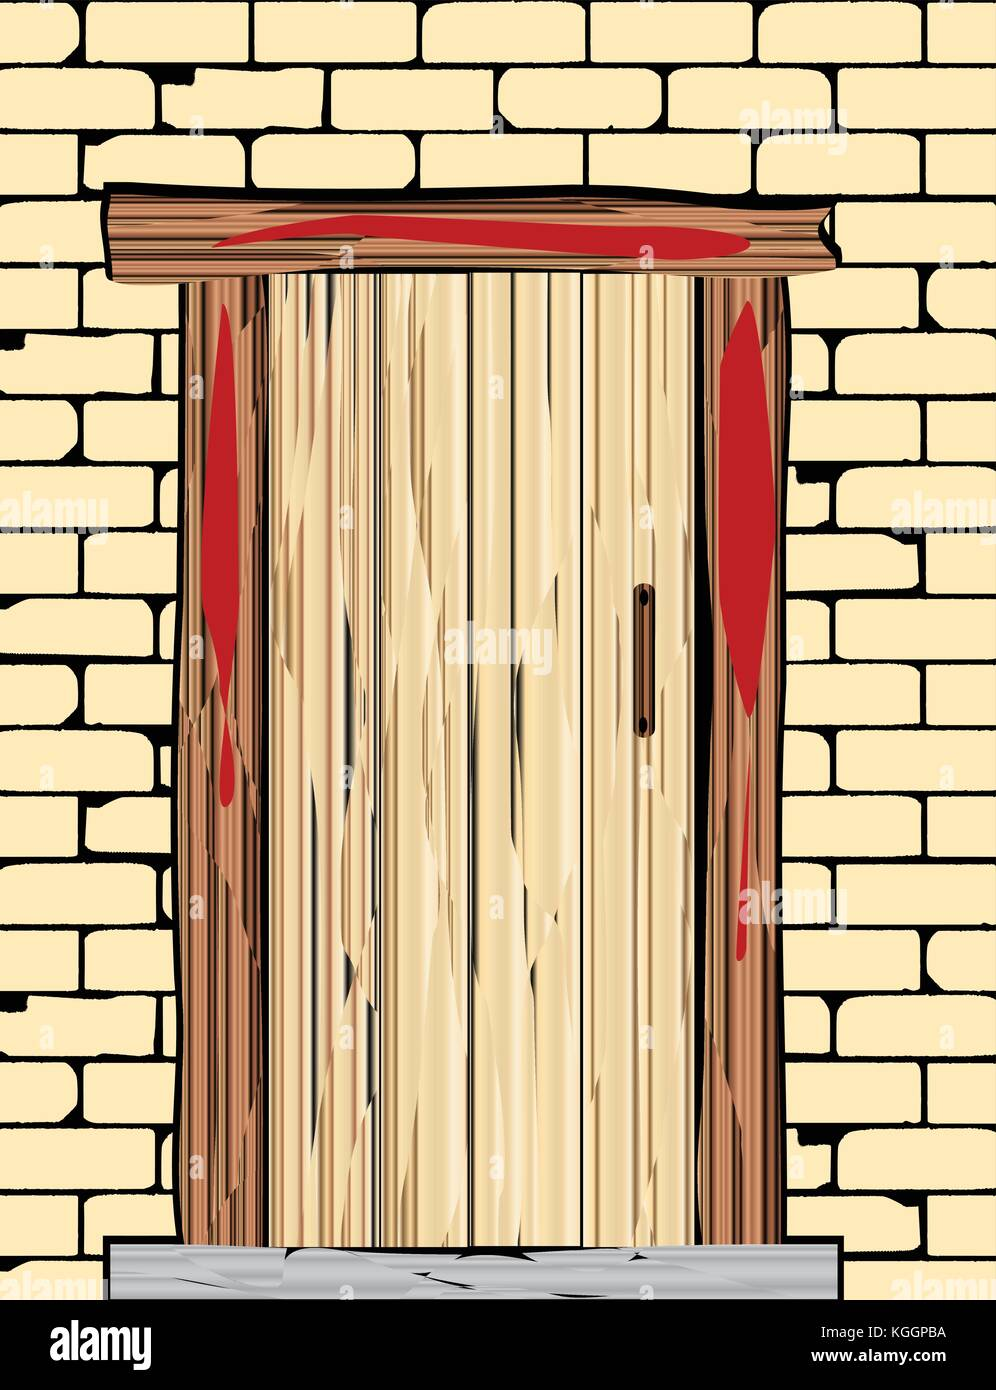 A Passover Door With Blood On The Wooden Frame Stock